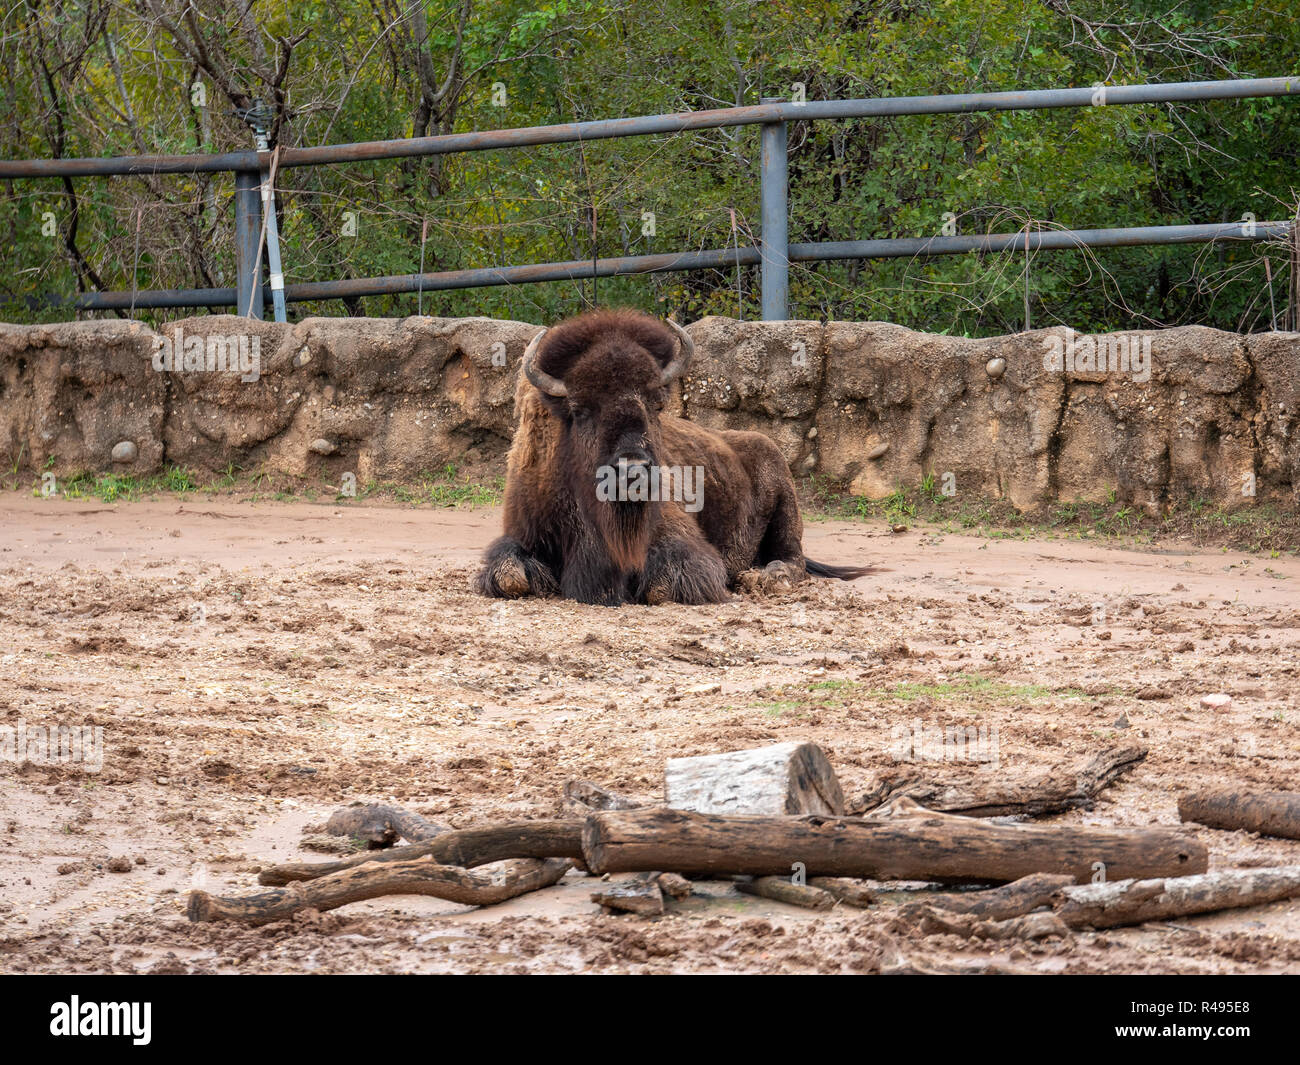 Large Buffalo In Texas Zoo Looking At the Camera - Stock Image